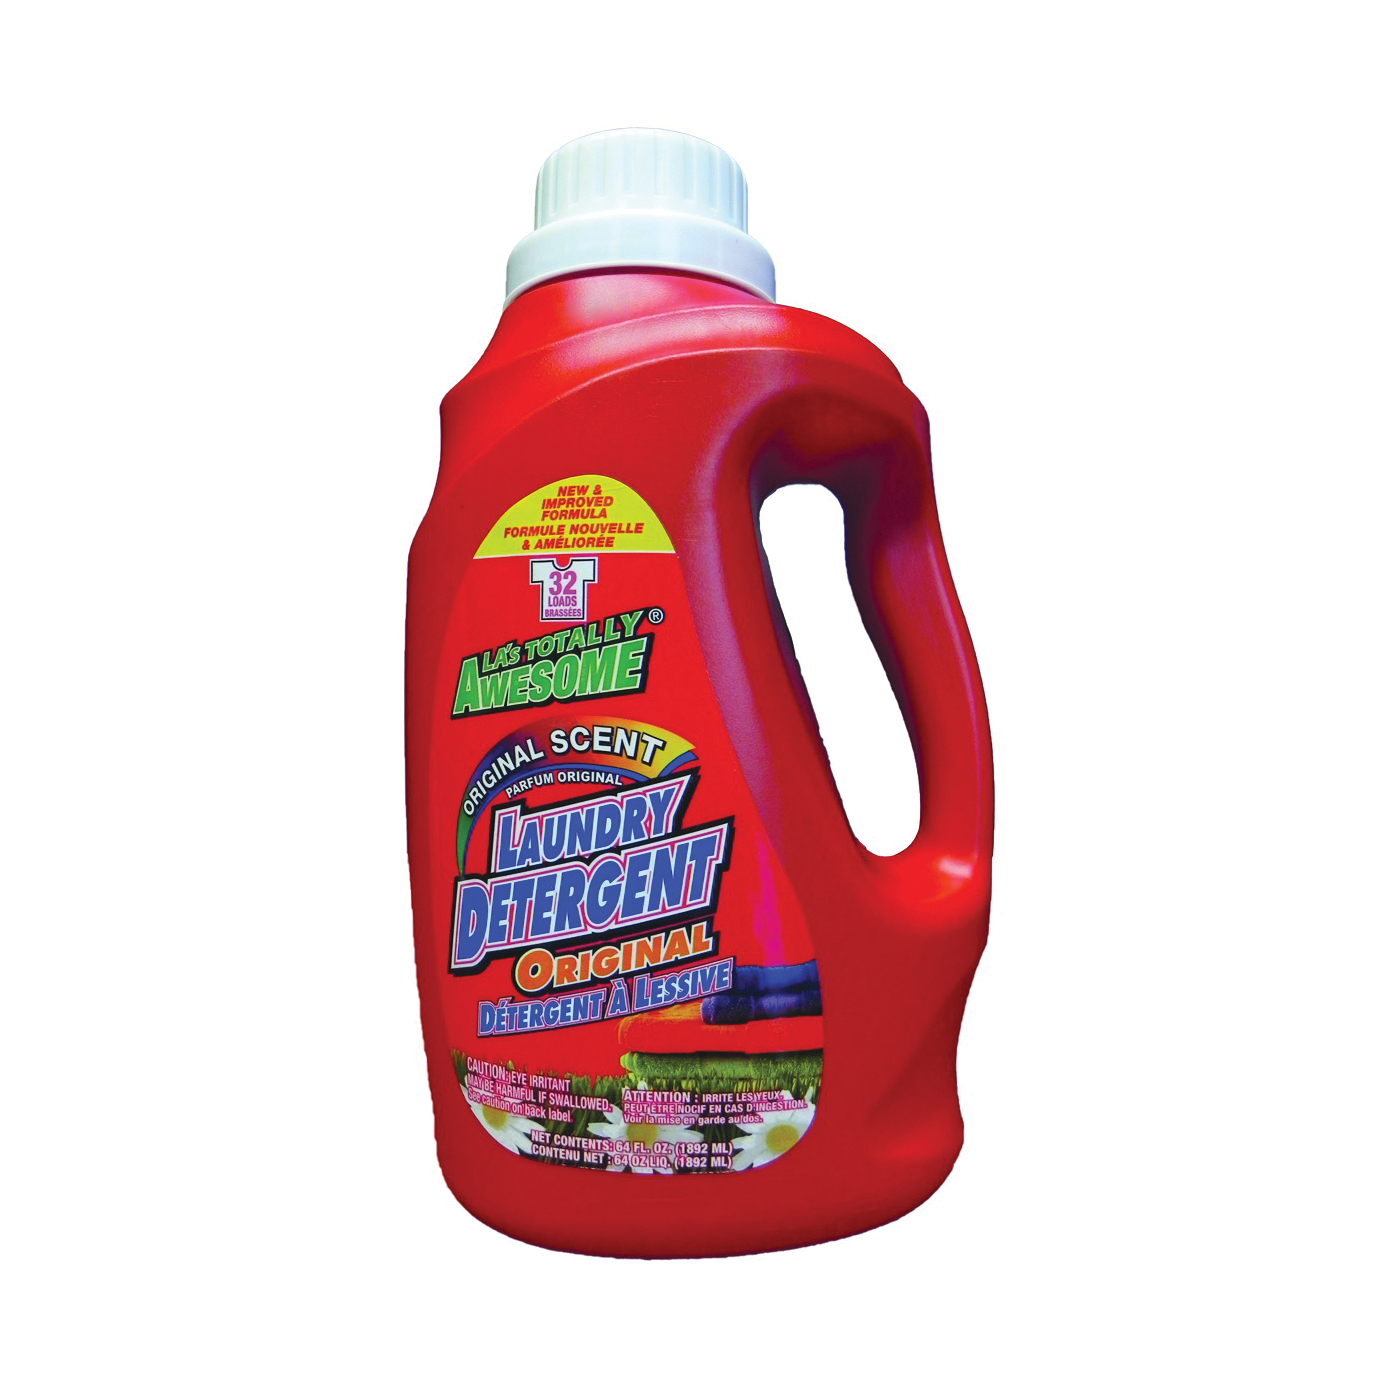 Picture of LA's TOTALLY AWESOME 233 Laundry Detergent, 64 oz, Liquid, Original